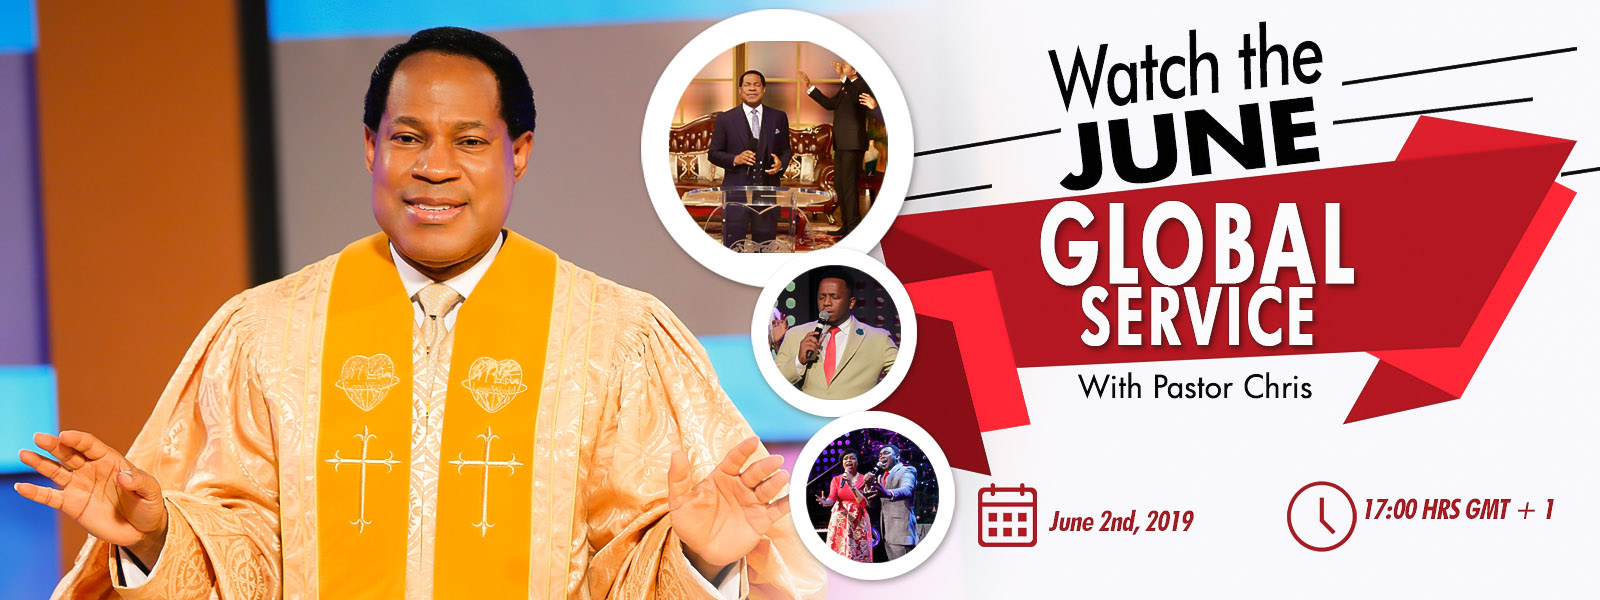 JUNE GLOBAL SERVICE WITH PASTOR CHRIS